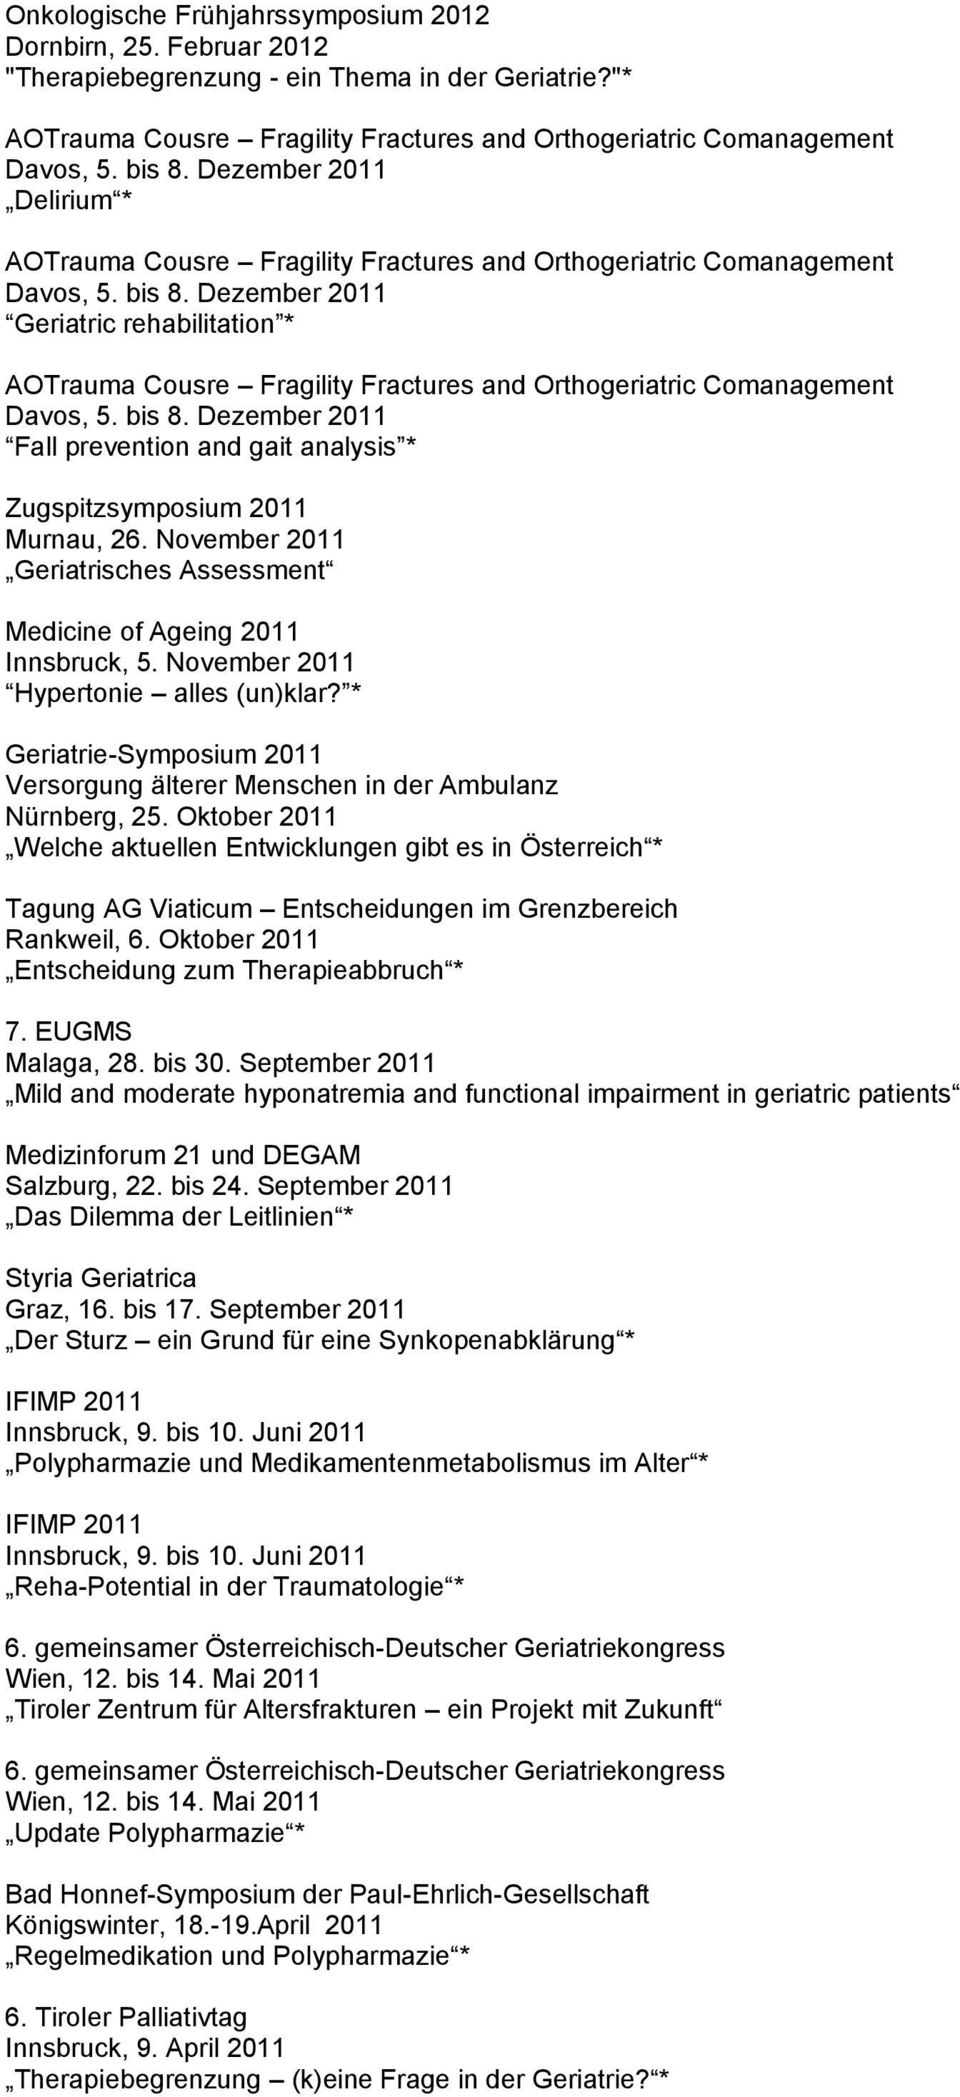 Dezember 2011 Geriatric rehabilitation * AOTrauma Cousre Fragility Fractures and Orthogeriatric Comanagement Davos, 5. bis 8.